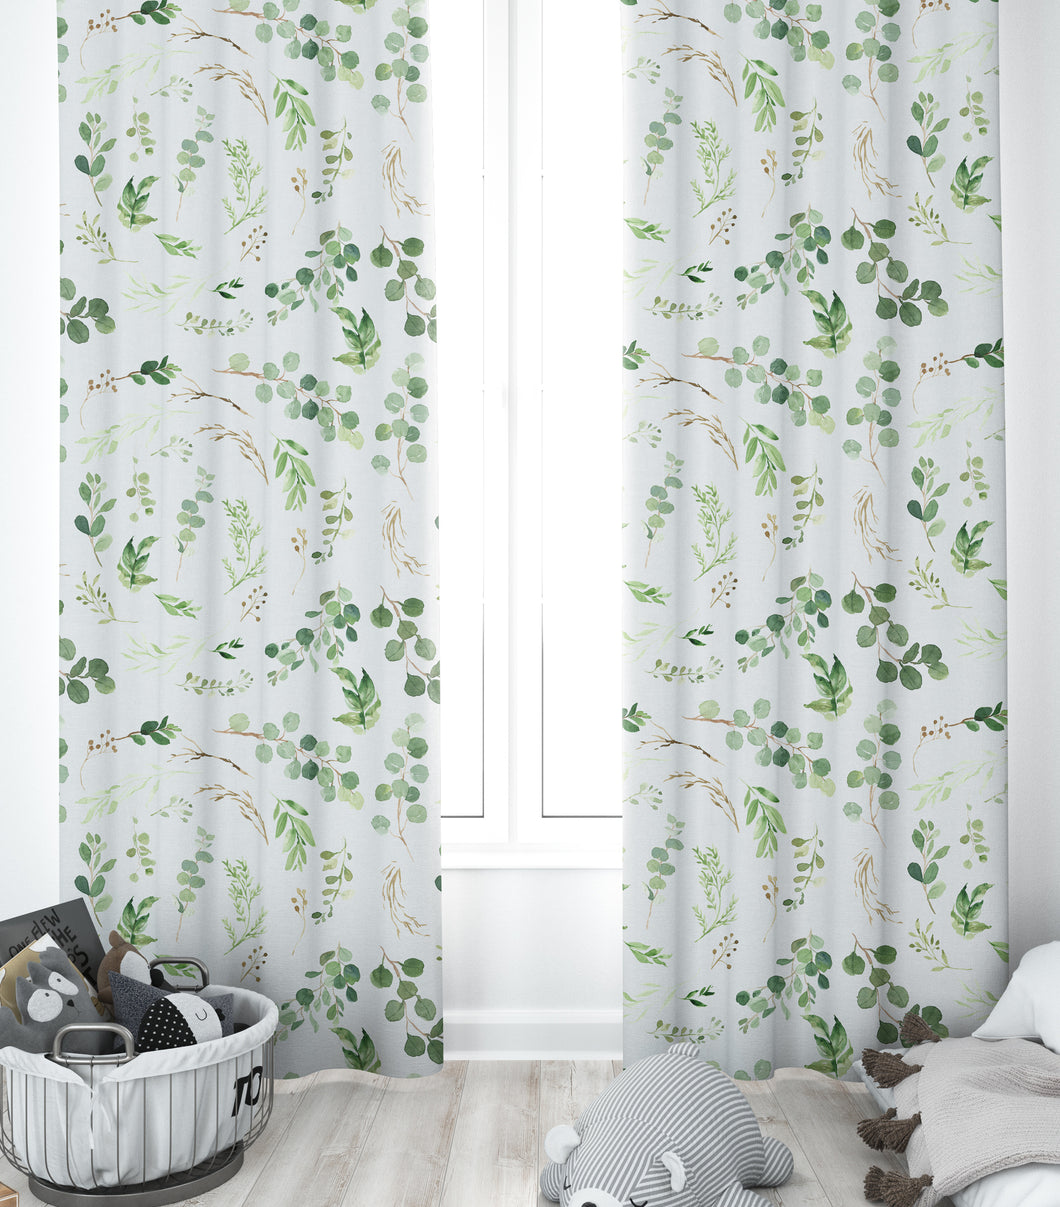 Nursery Curtains - Greenery Collection